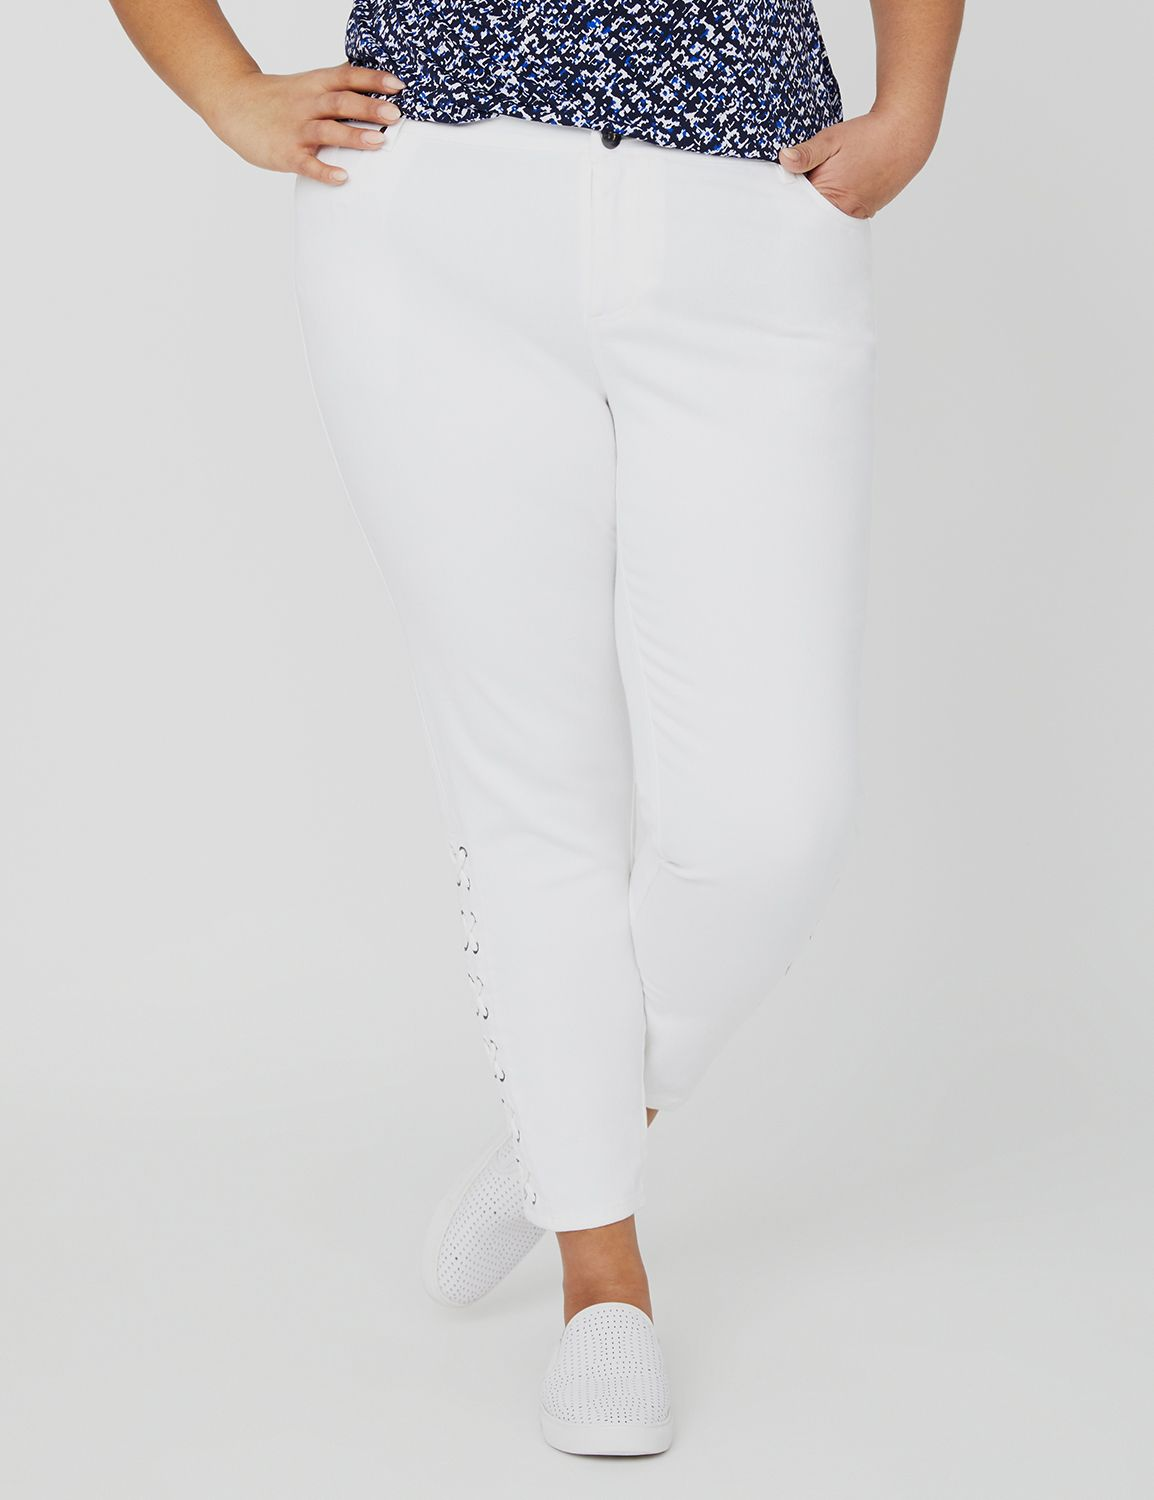 Curvy Collection Lace-Up White Jean 1091485 Curvy Collection Sateen Whi MP-300098708